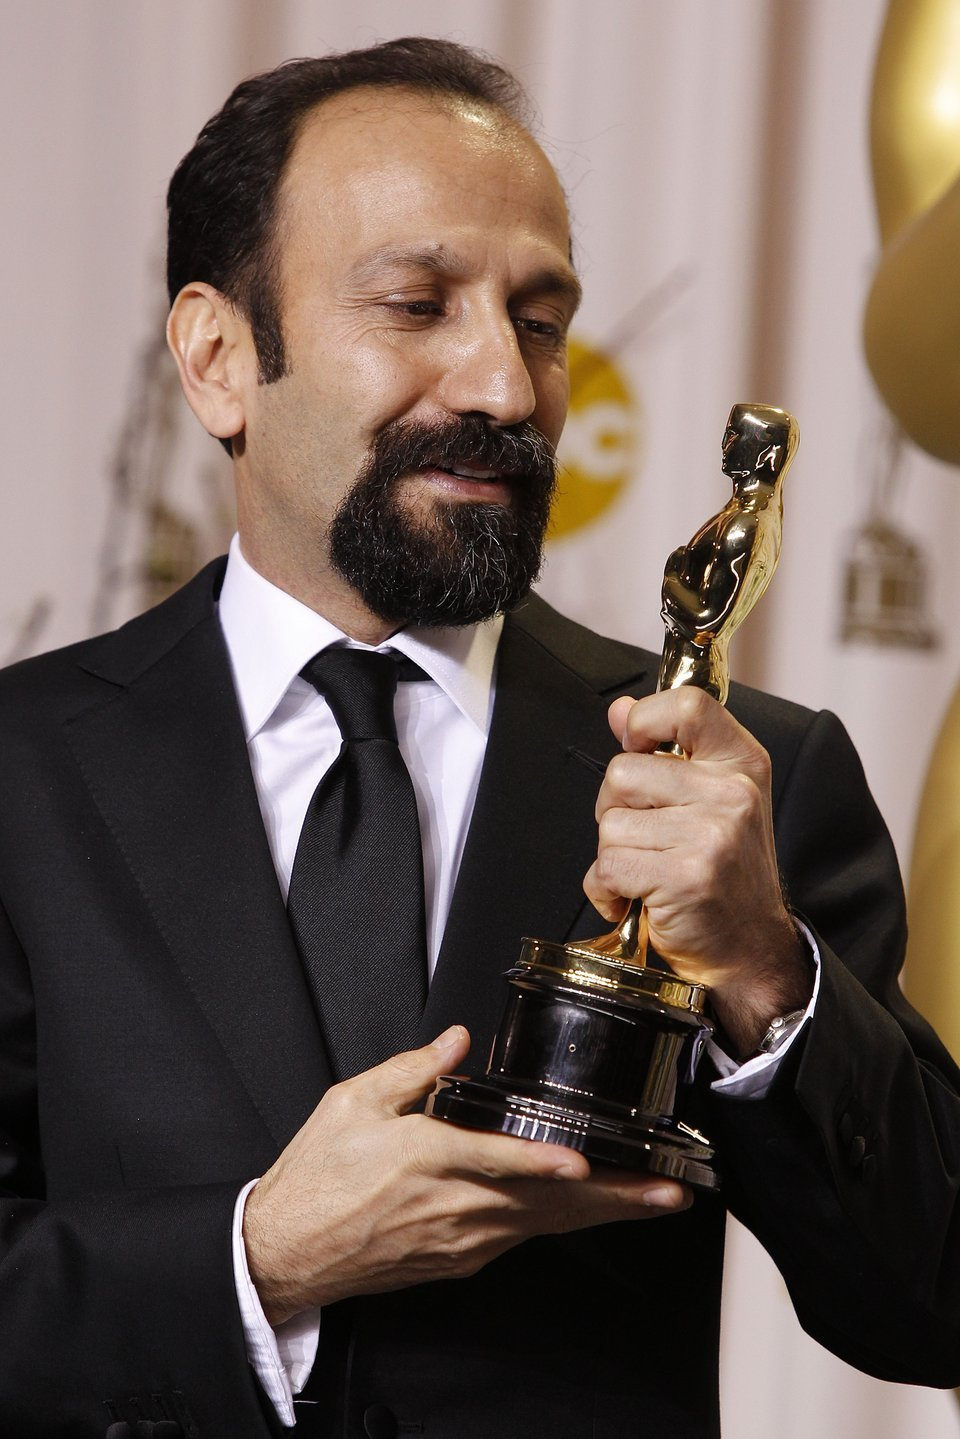 asghar farhadi directorasghar farhadi salesman, asghar farhadi film, asghar farhadi oscar, asghar farhadi interview, asghar farhadi a separation, asghar farhadi the guardian, asghar farhadi movie, asghar farhadi imdb, asghar farhadi wiki, asghar farhadi last movie, asghar farhadi past, asghar farhadi trump oscar, asghar farhadi height, asghar farhadi forushande, asghar farhadi quotes, asghar farhadi photo, asghar farhadi kinopoisk, asghar farhadi email address, asghar farhadi interview with haaretz, asghar farhadi director